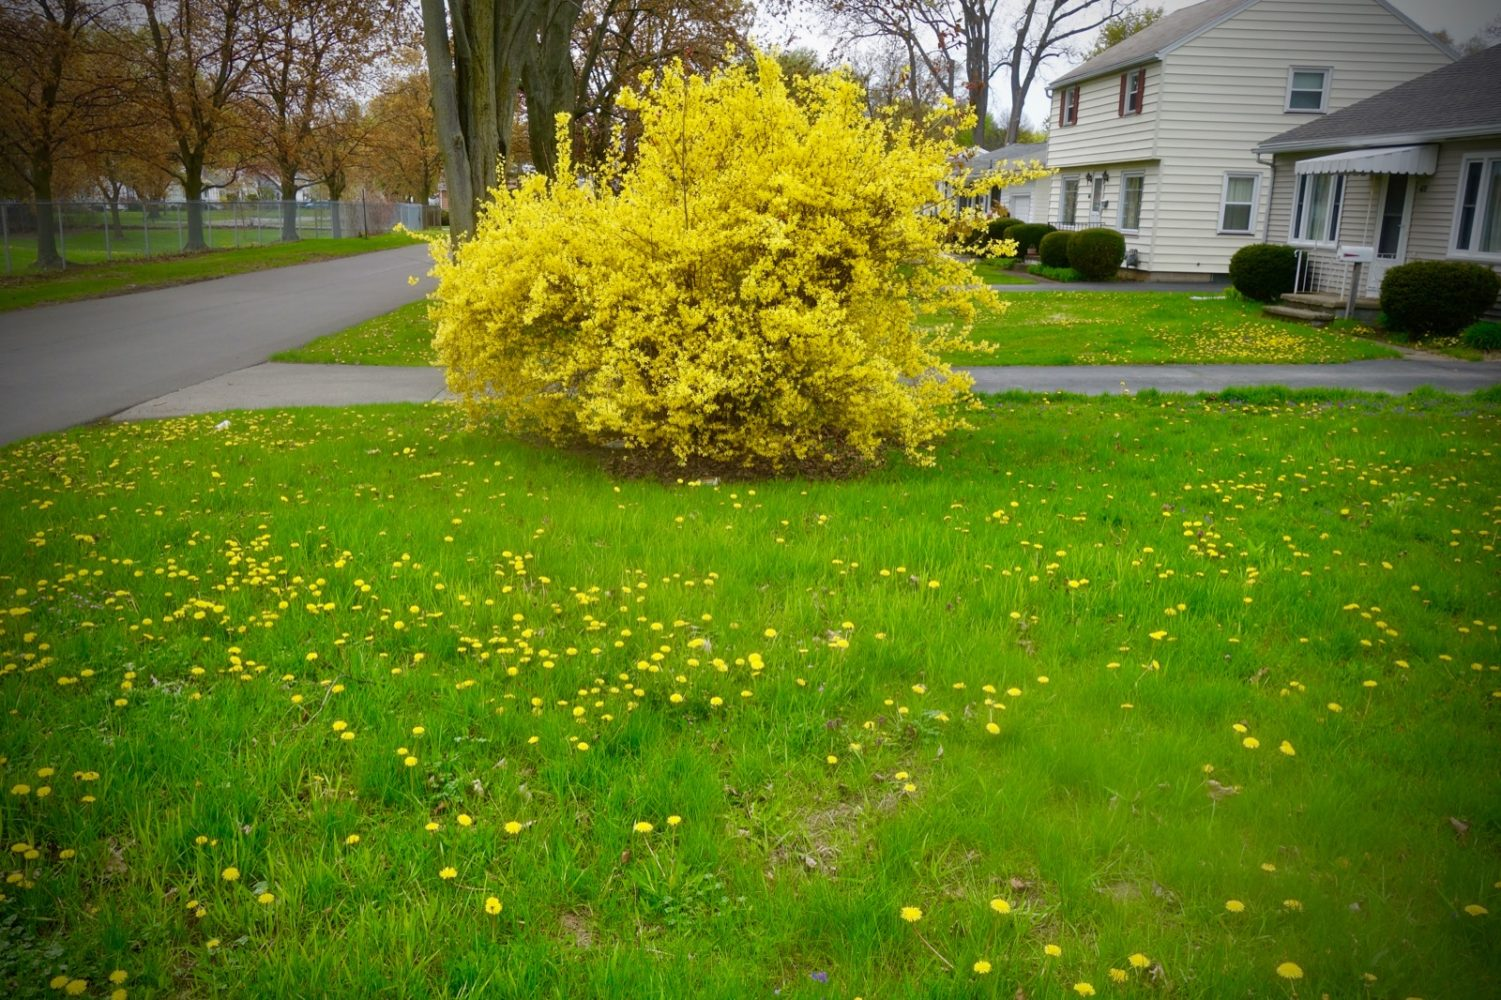 Dandelions and Forsythia in bloom on walk to Wegmans.